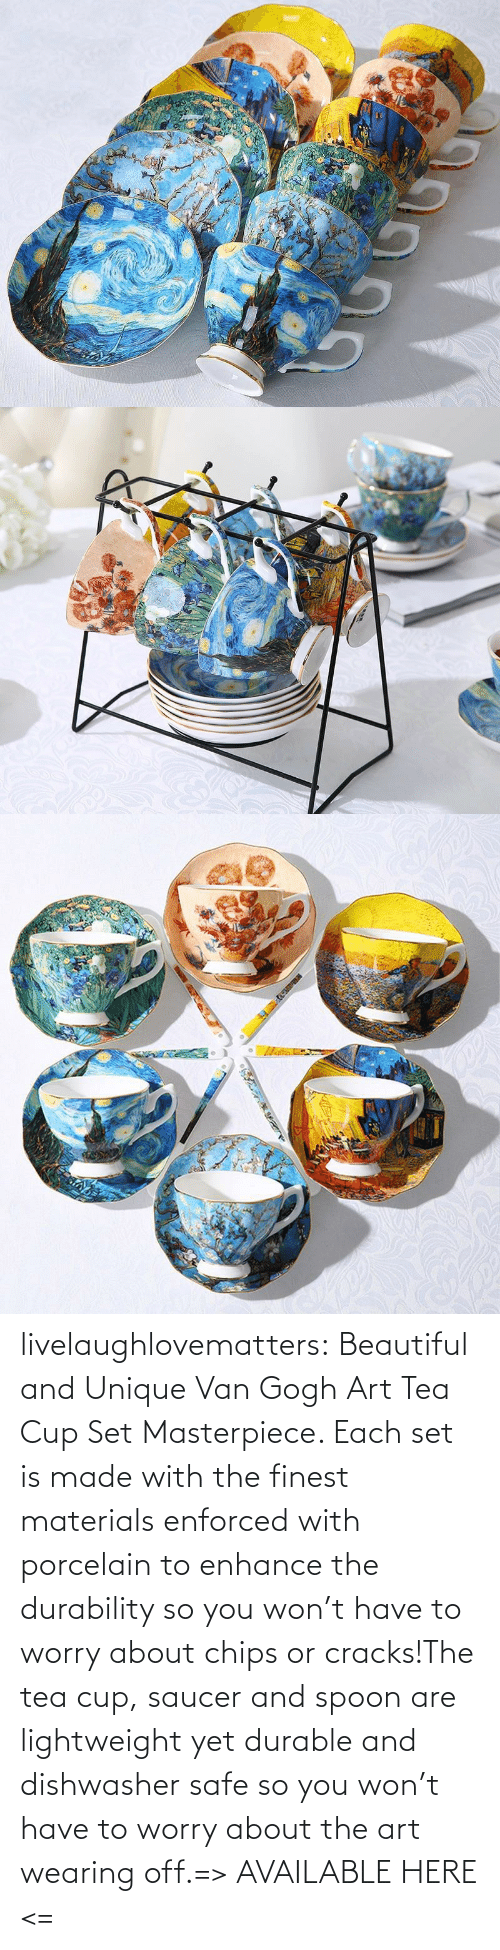 The Tea: livelaughlovematters:  Beautiful and Unique Van Gogh Art Tea Cup Set Masterpiece. Each set is made with the finest materials enforced with porcelain to enhance the durability so you won't have to worry about chips or cracks!The tea cup, saucer and spoon are lightweight yet durable and dishwasher safe so you won't have to worry about the art wearing off.=> AVAILABLE HERE <=